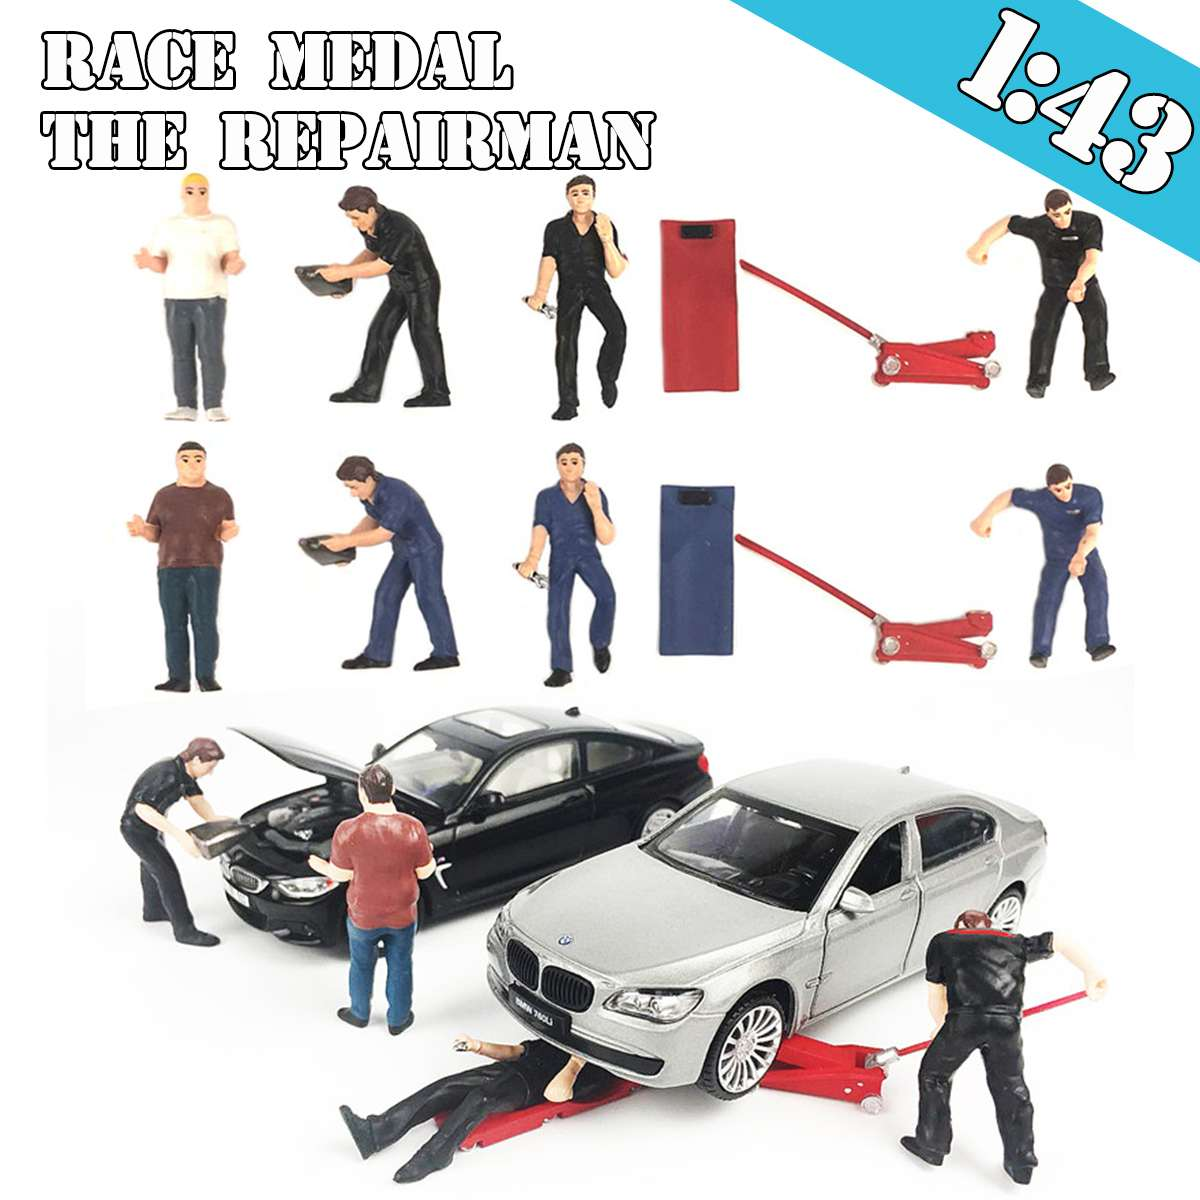 1:43 5pcs People Race Medal Set People Model The Repairman Scenario Model For Matchbox Greenlight M2